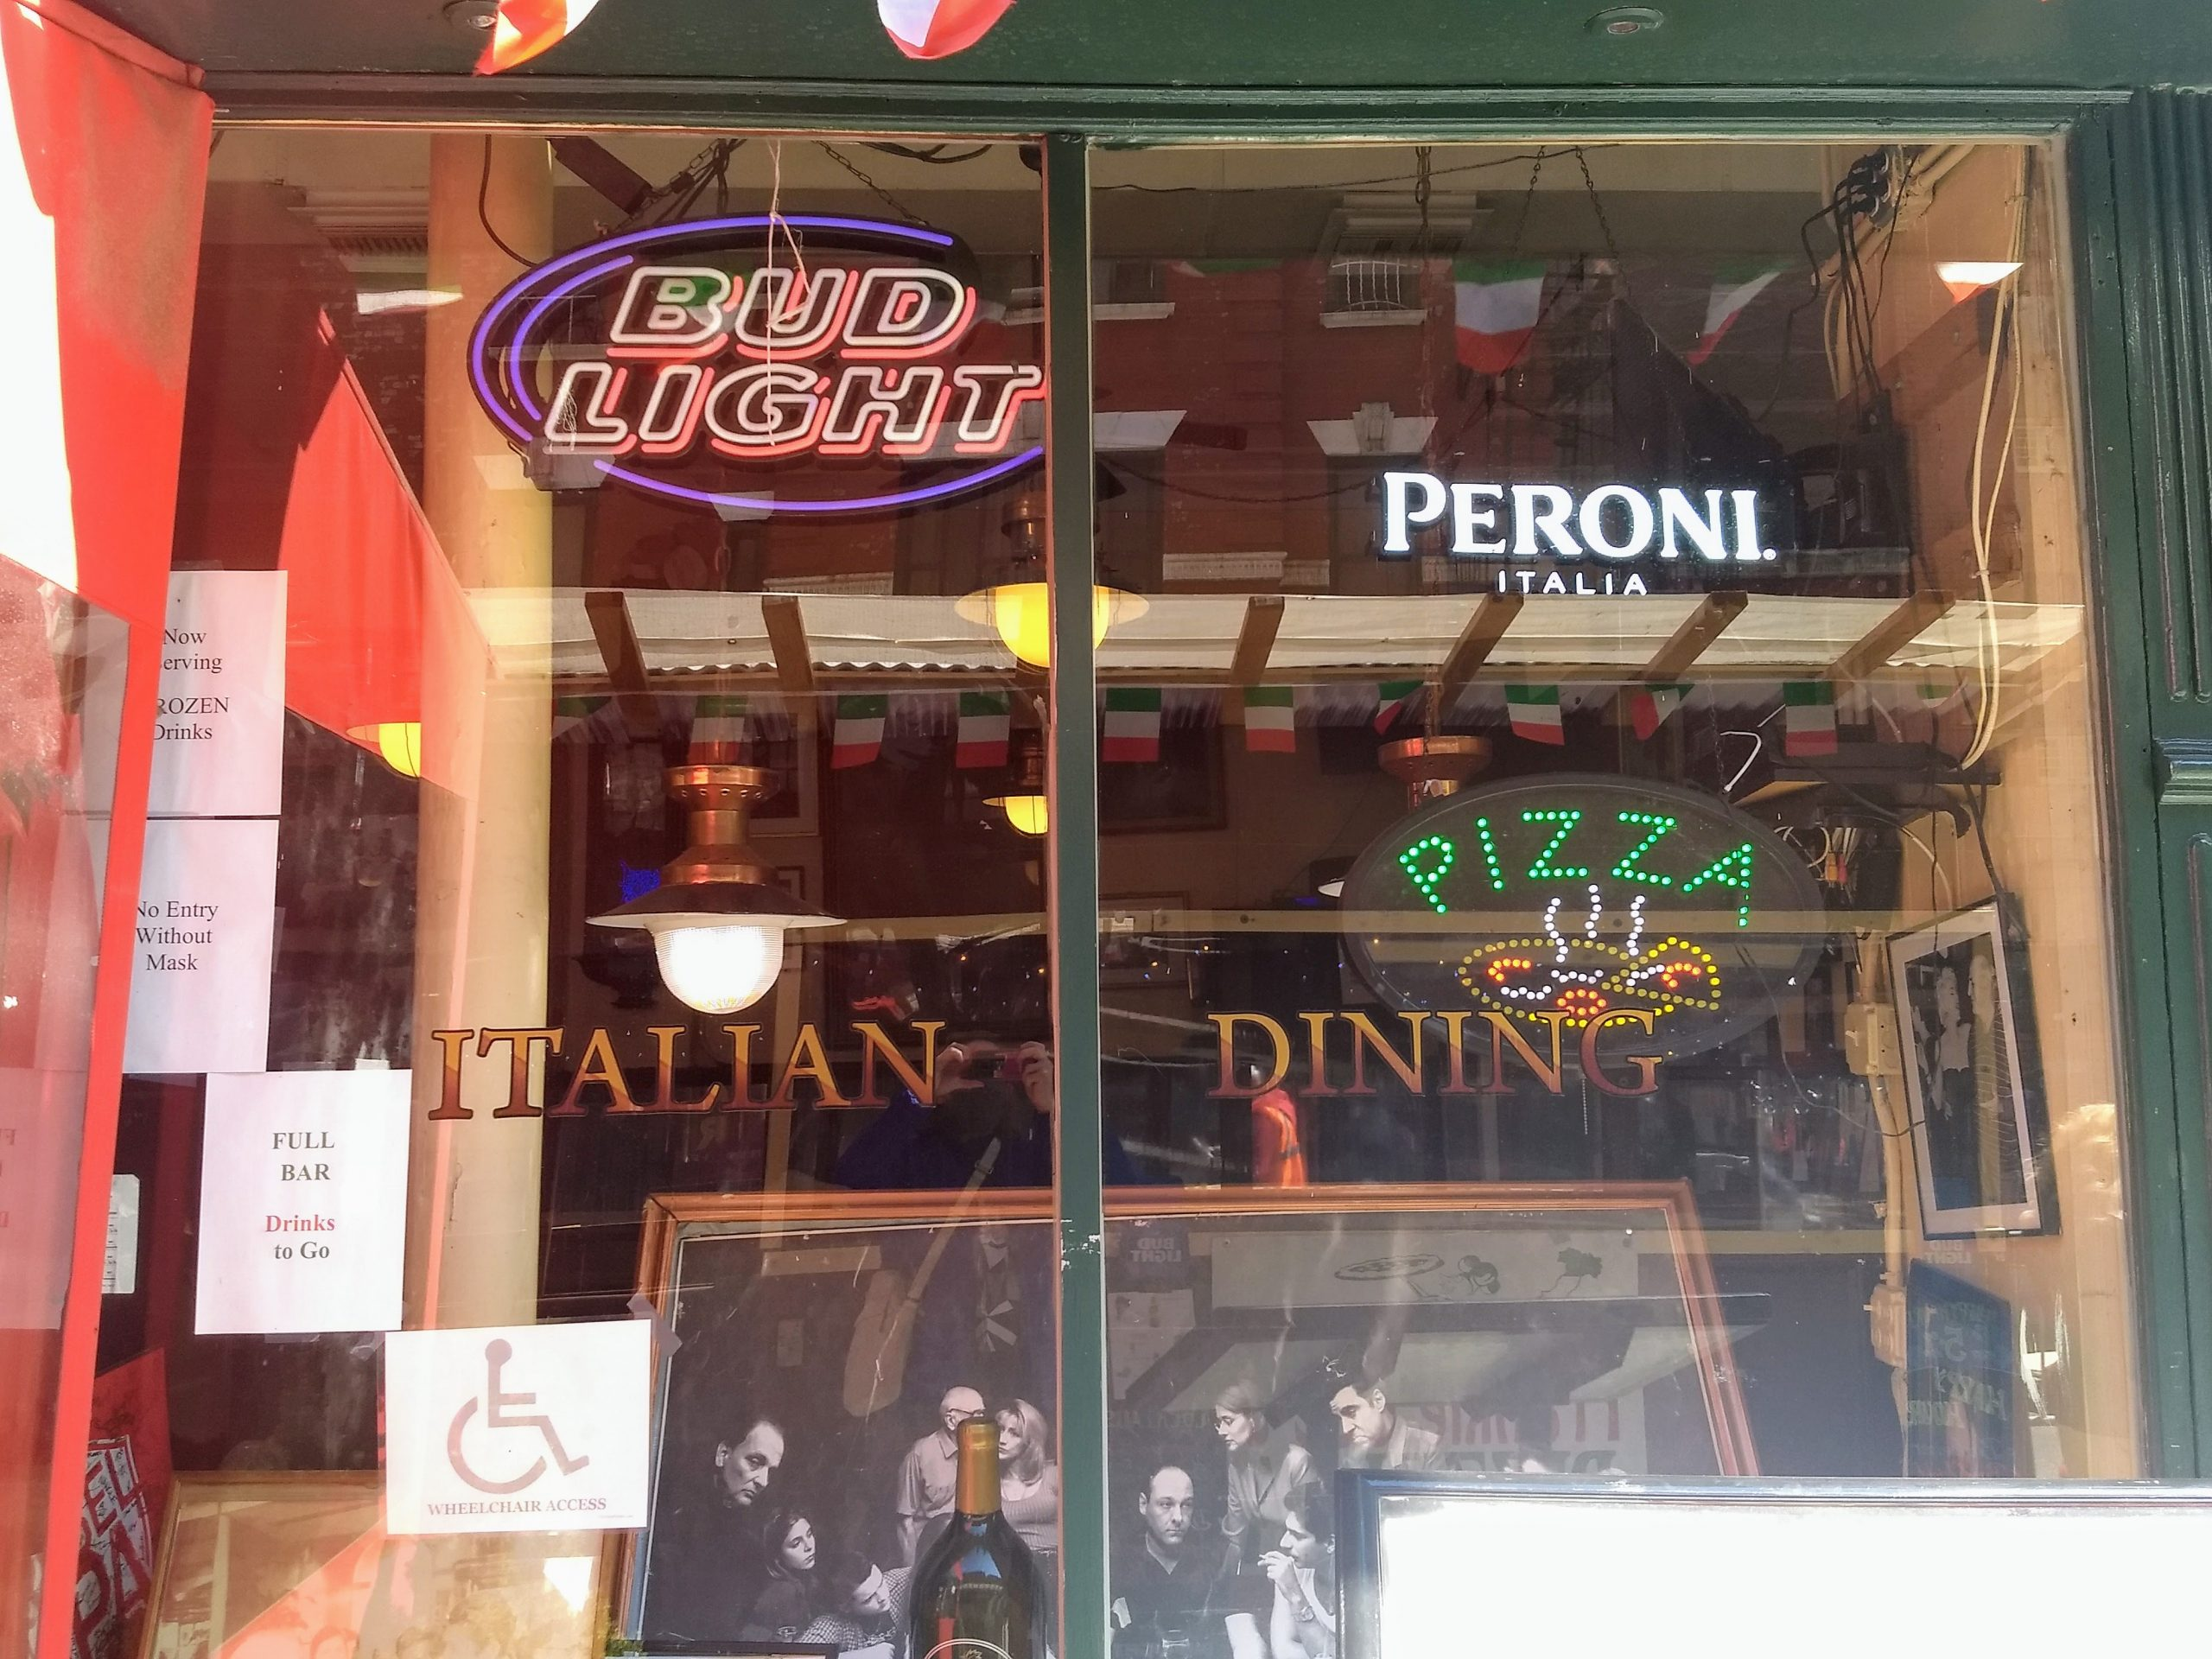 A trip to Little Italy